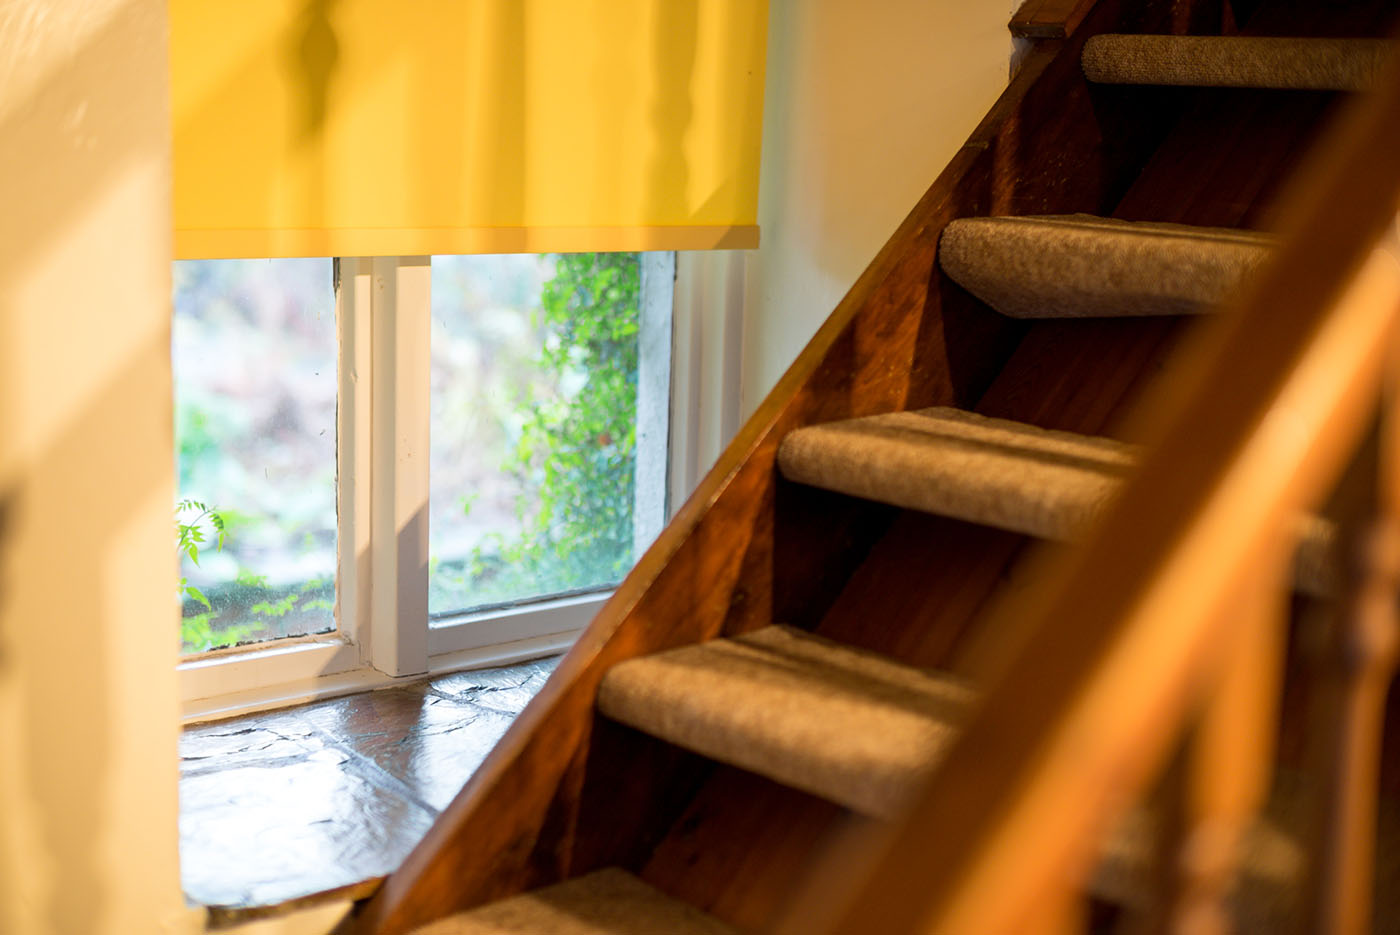 Stable stair window